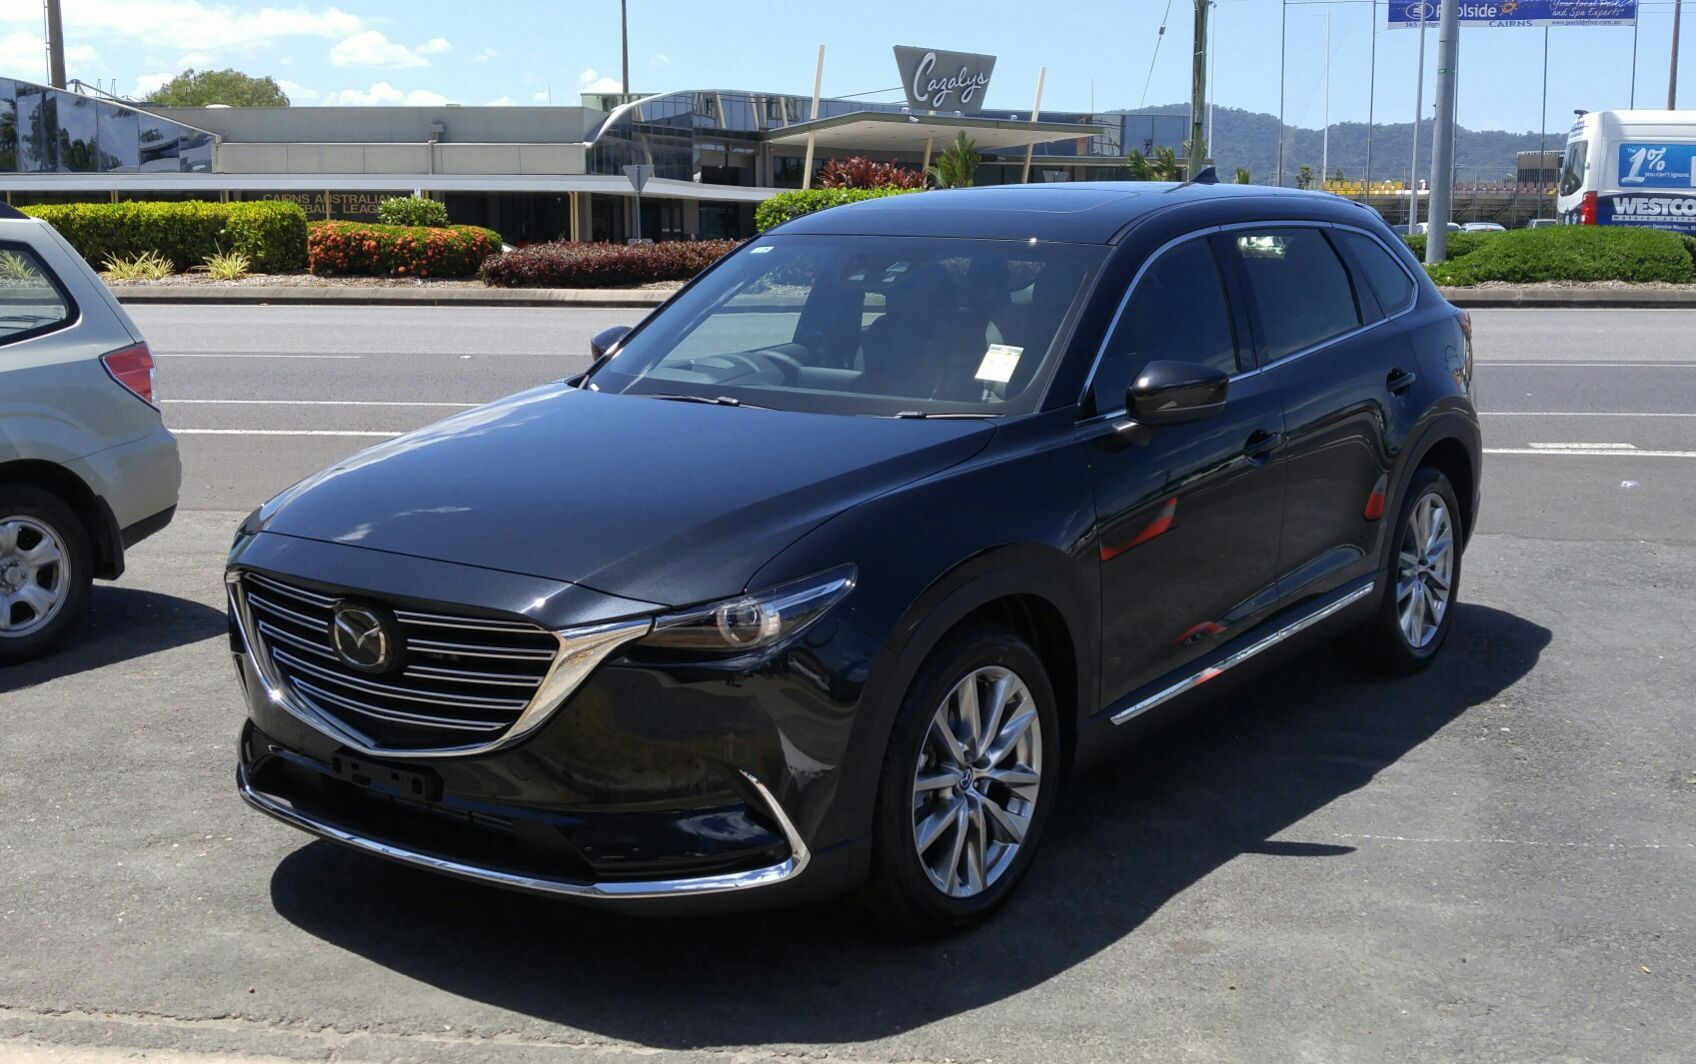 Wikipedia Mazda Cx 5 >> File:MAZDA CX-9 2019.11.17 01.jpg - Wikimedia Commons